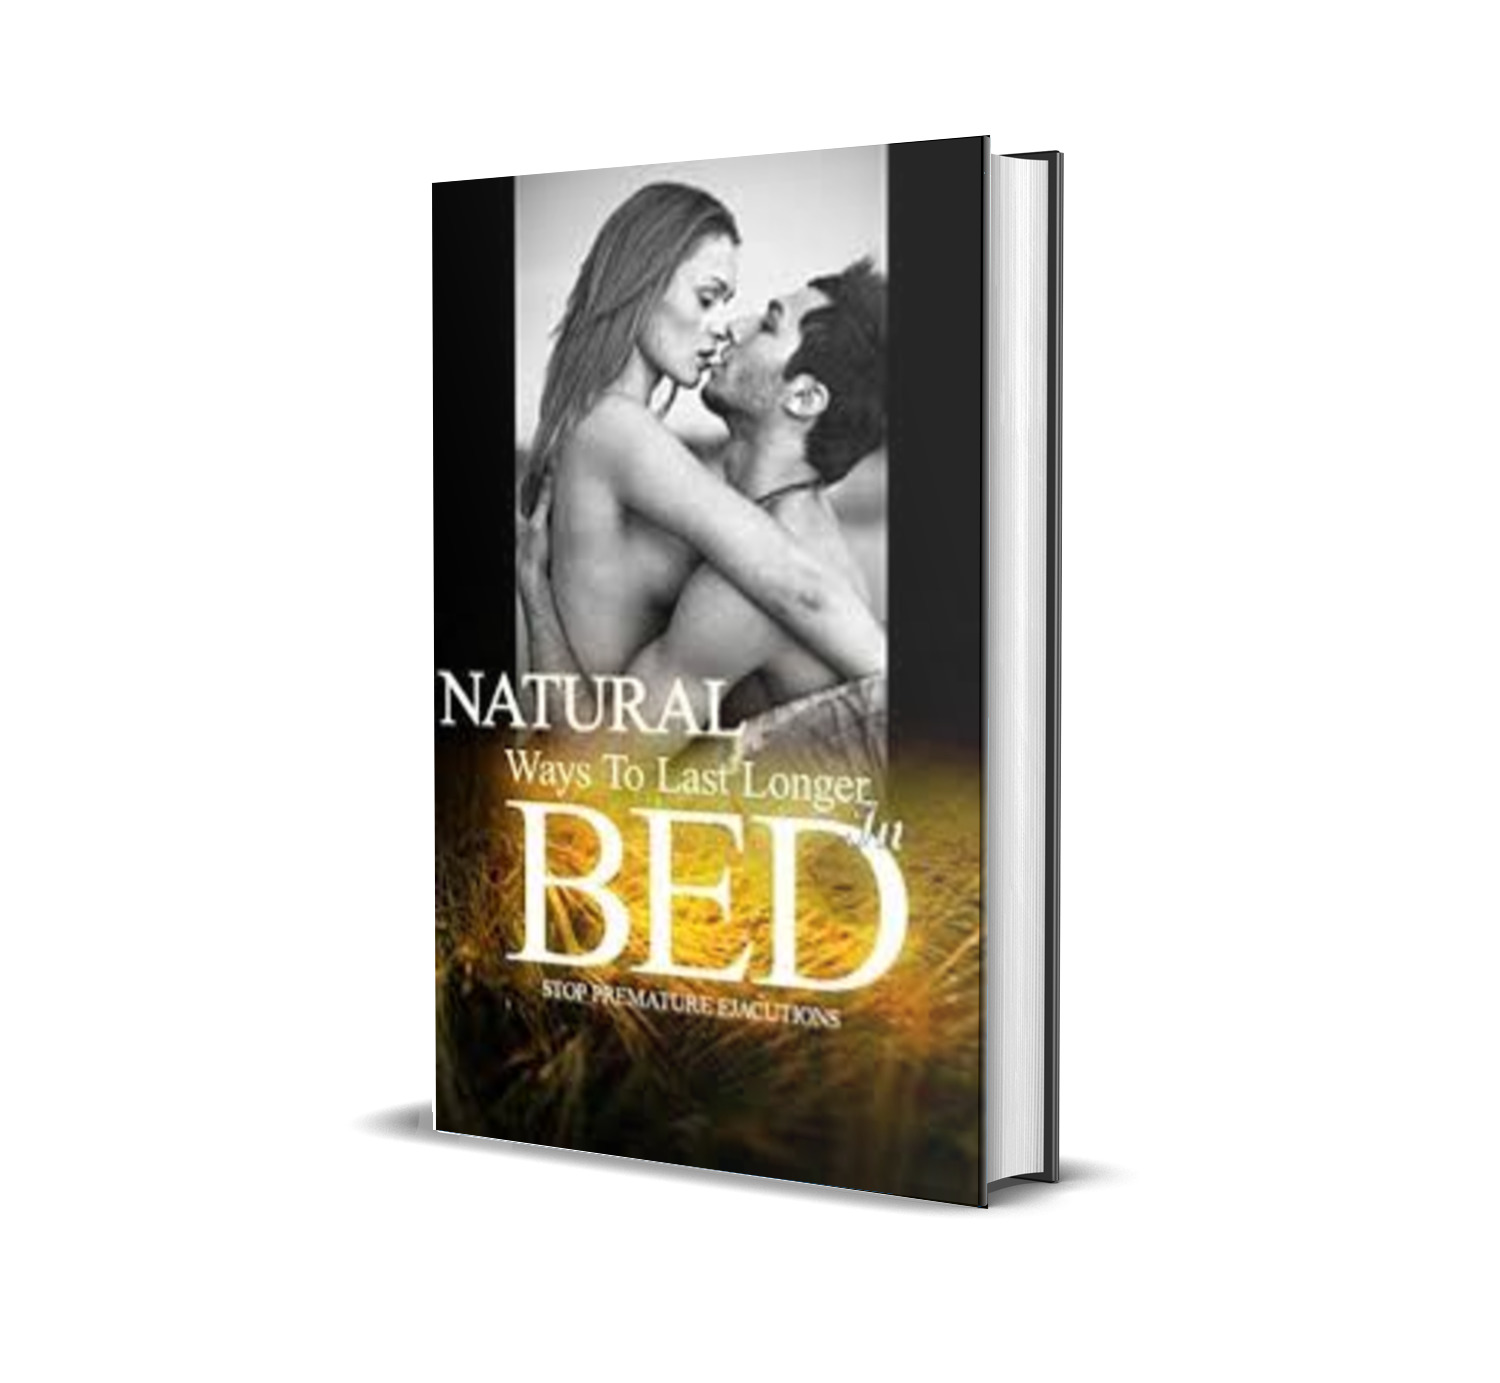 Natural ways to last longer in bed